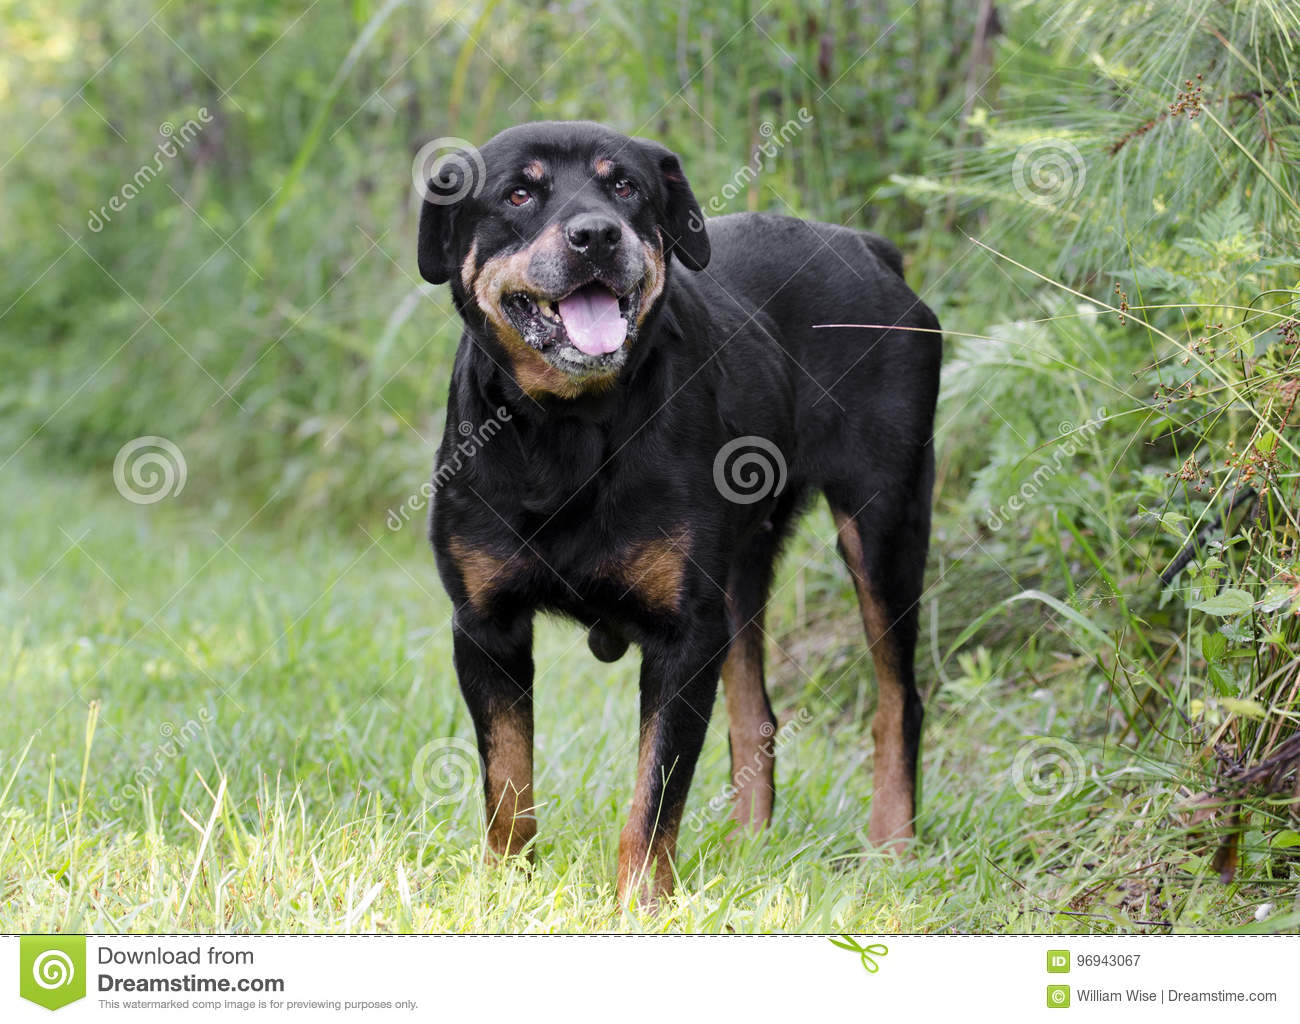 german rottweiler dog. royalty-free stock photo. download senior female german rottweiler dog e